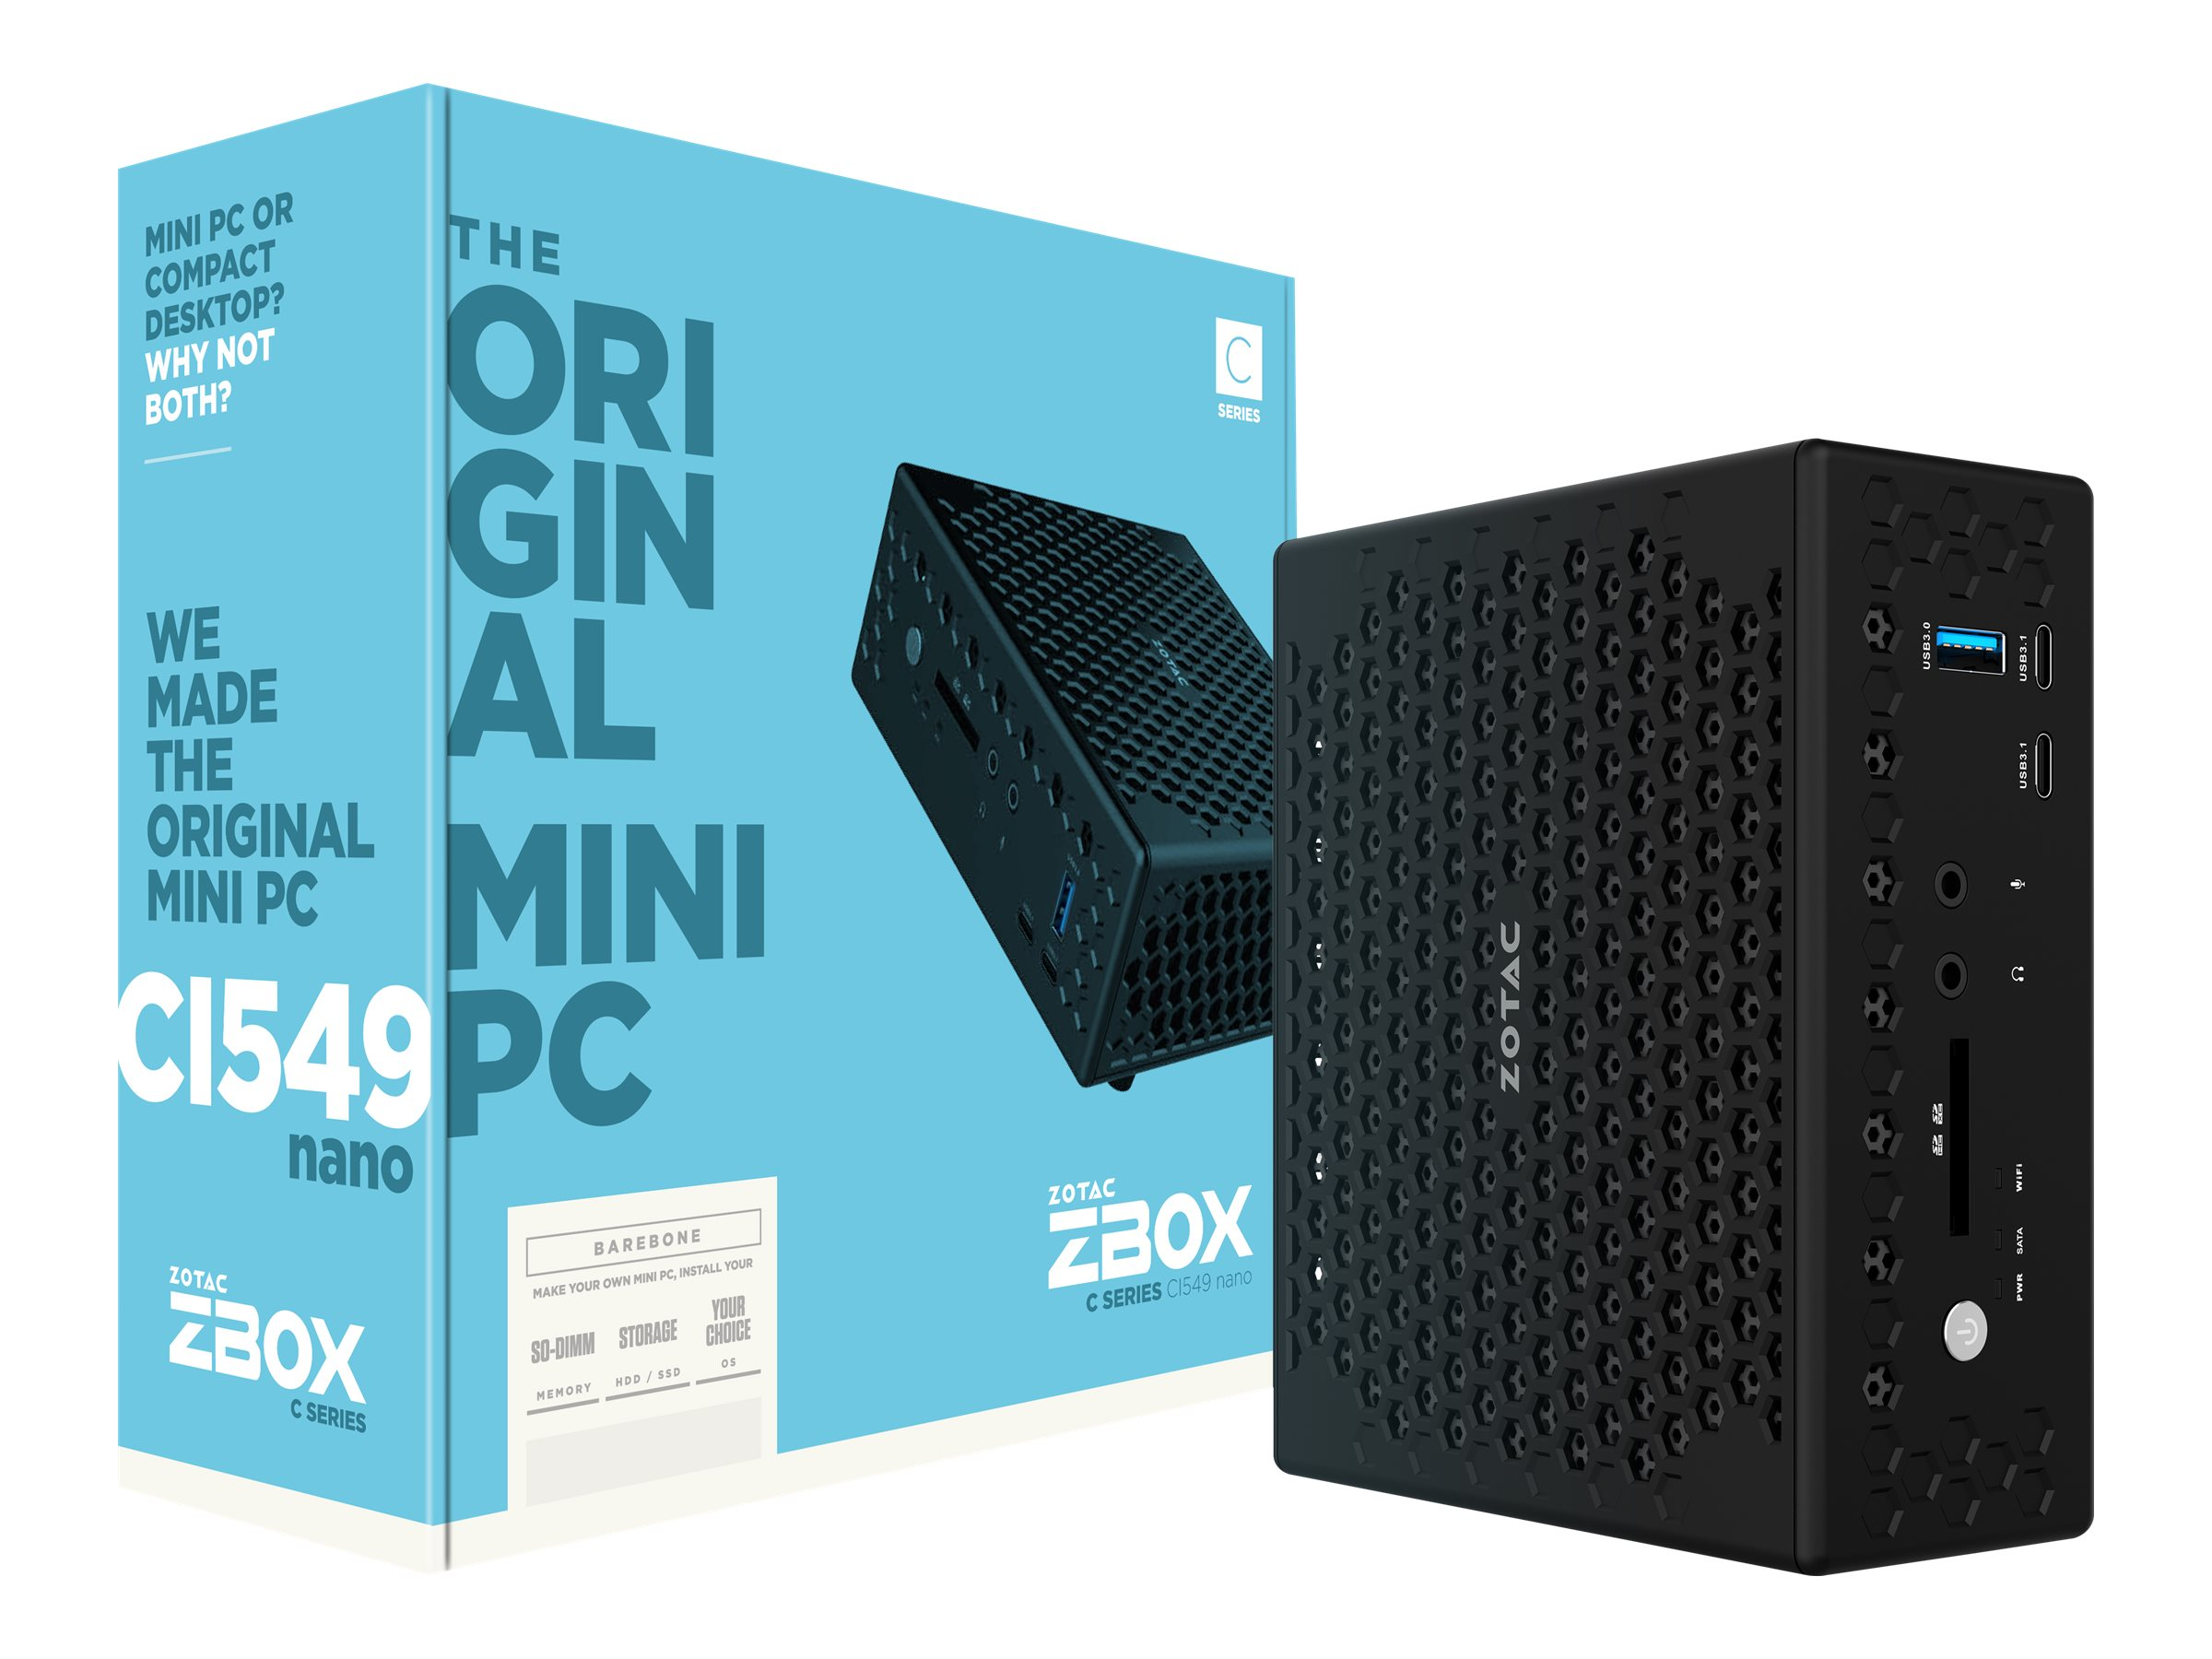 ZOTAC ZBOX C Series CI549 NANO - Barebone - Mini-PC - 1 x Core i5 7300U / 2.6 GHz - HD Graphics 620 - GigE